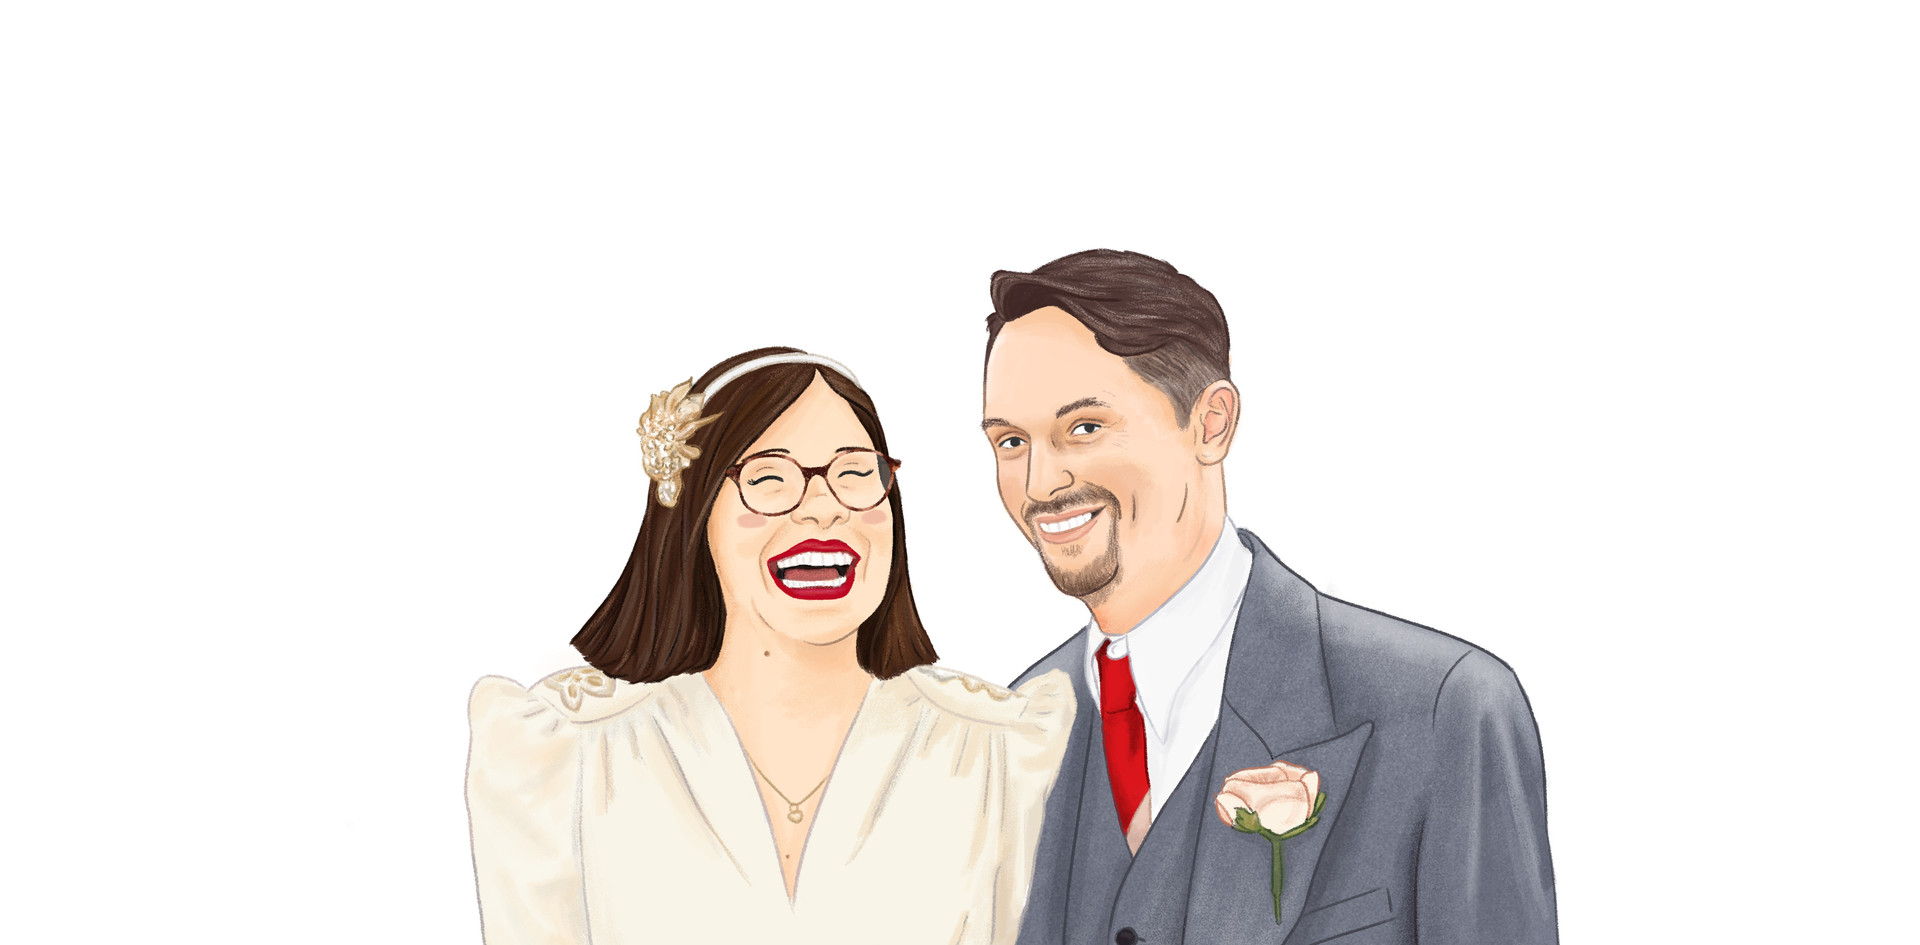 Illustrated Digital Wedding Couple Portrait. Bride & Groom Personalised Gift.